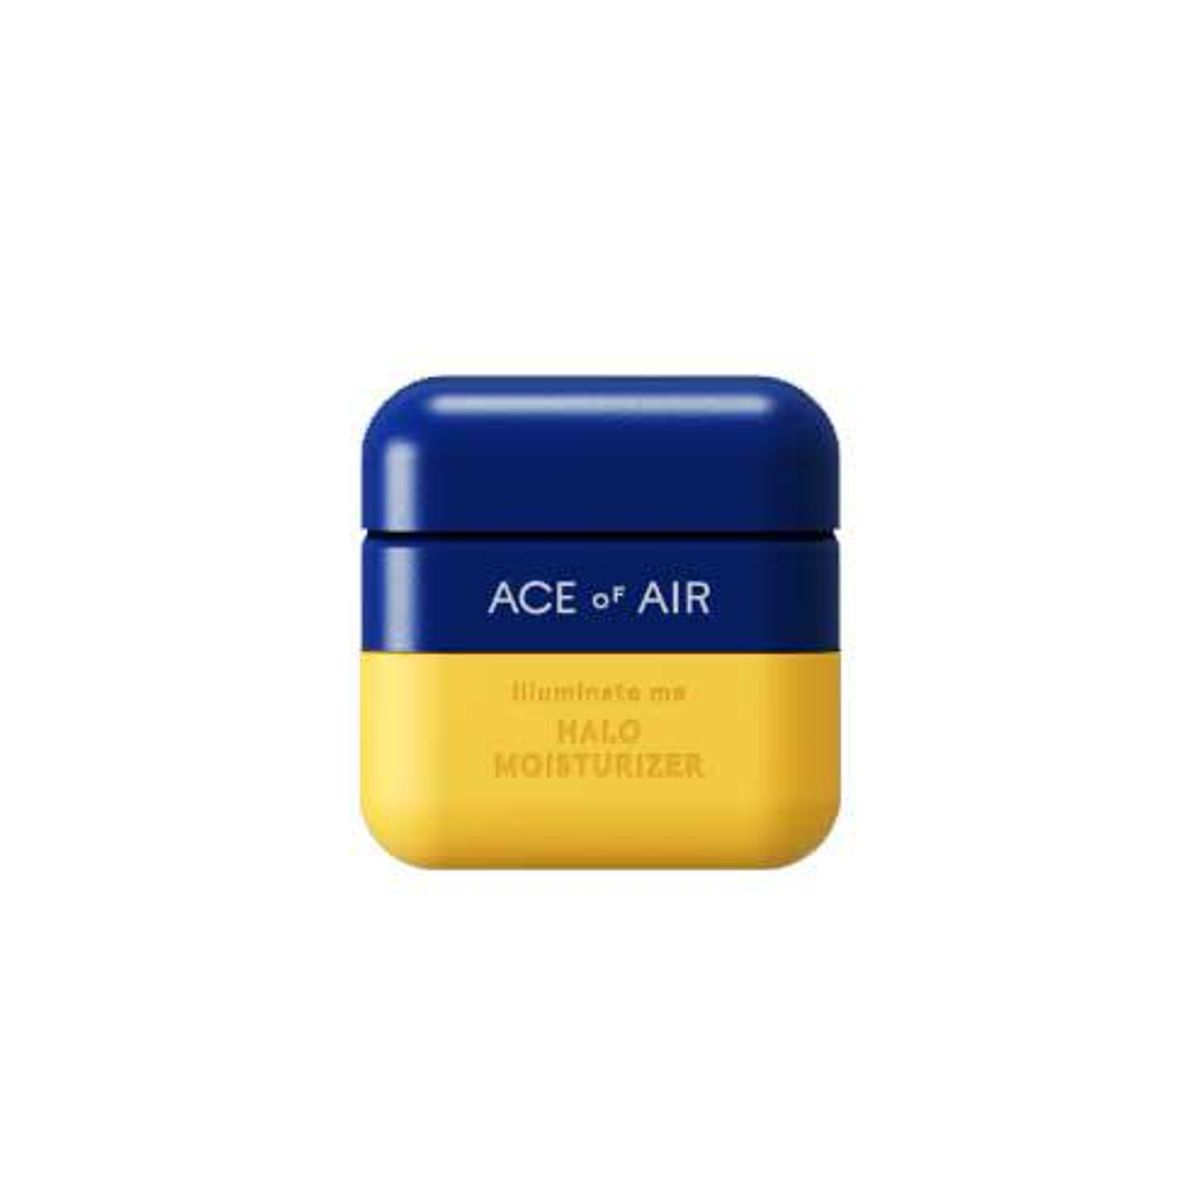 ace of air ace of air halo moisturizer